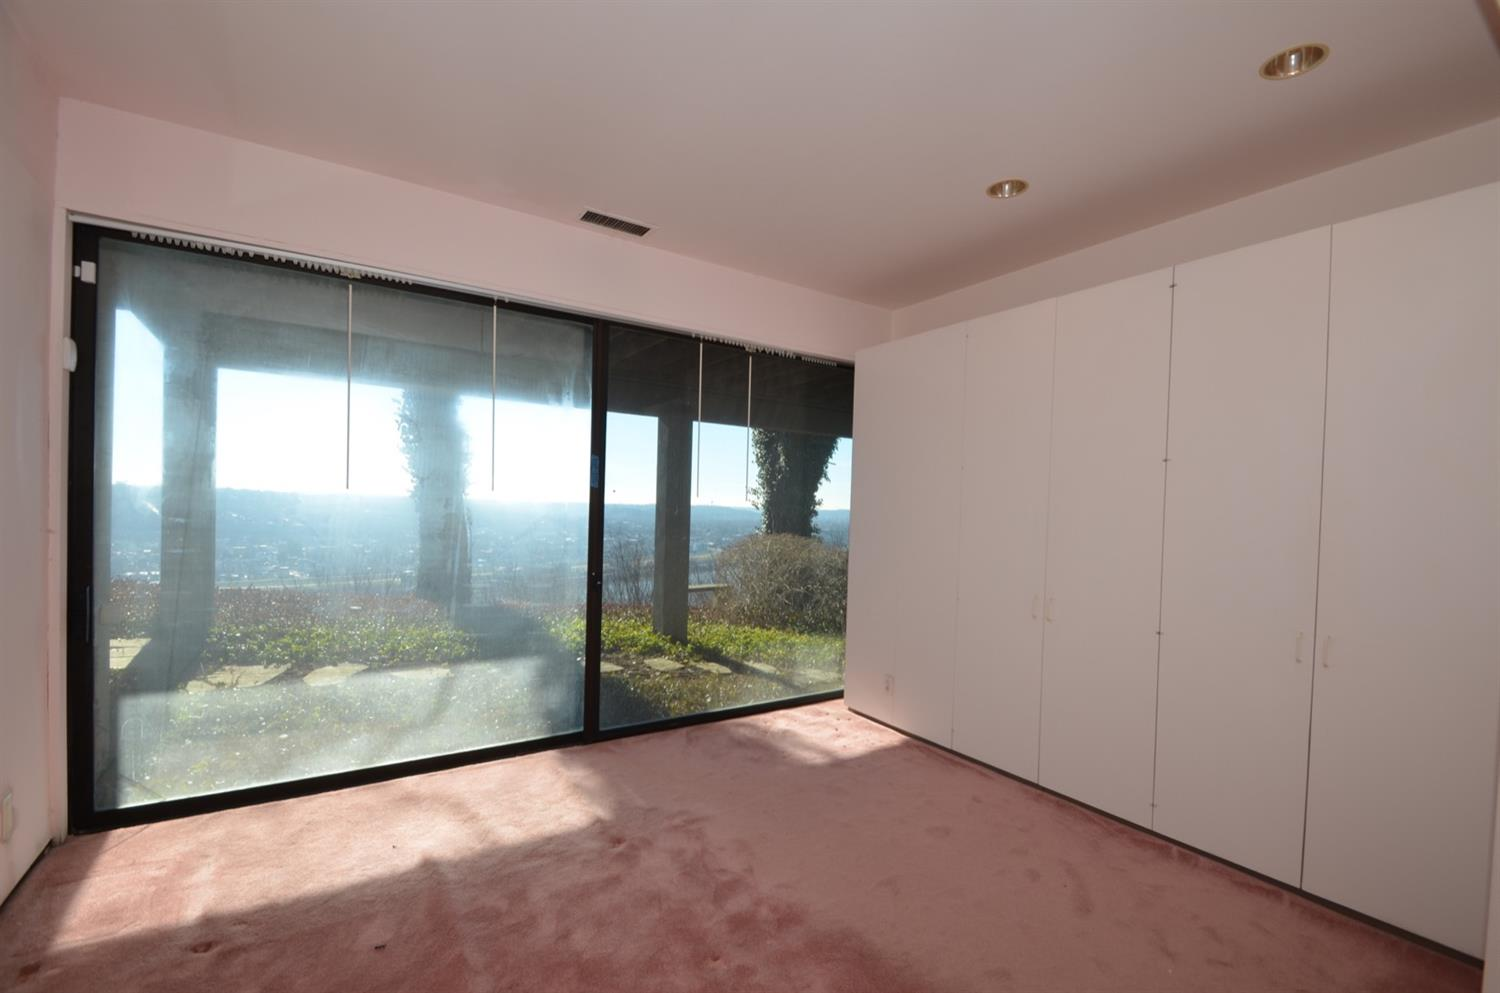 Bedroom 2 features an oversized window/slider facing the riverview, custom closet cabinetry and an ensuite full bath.